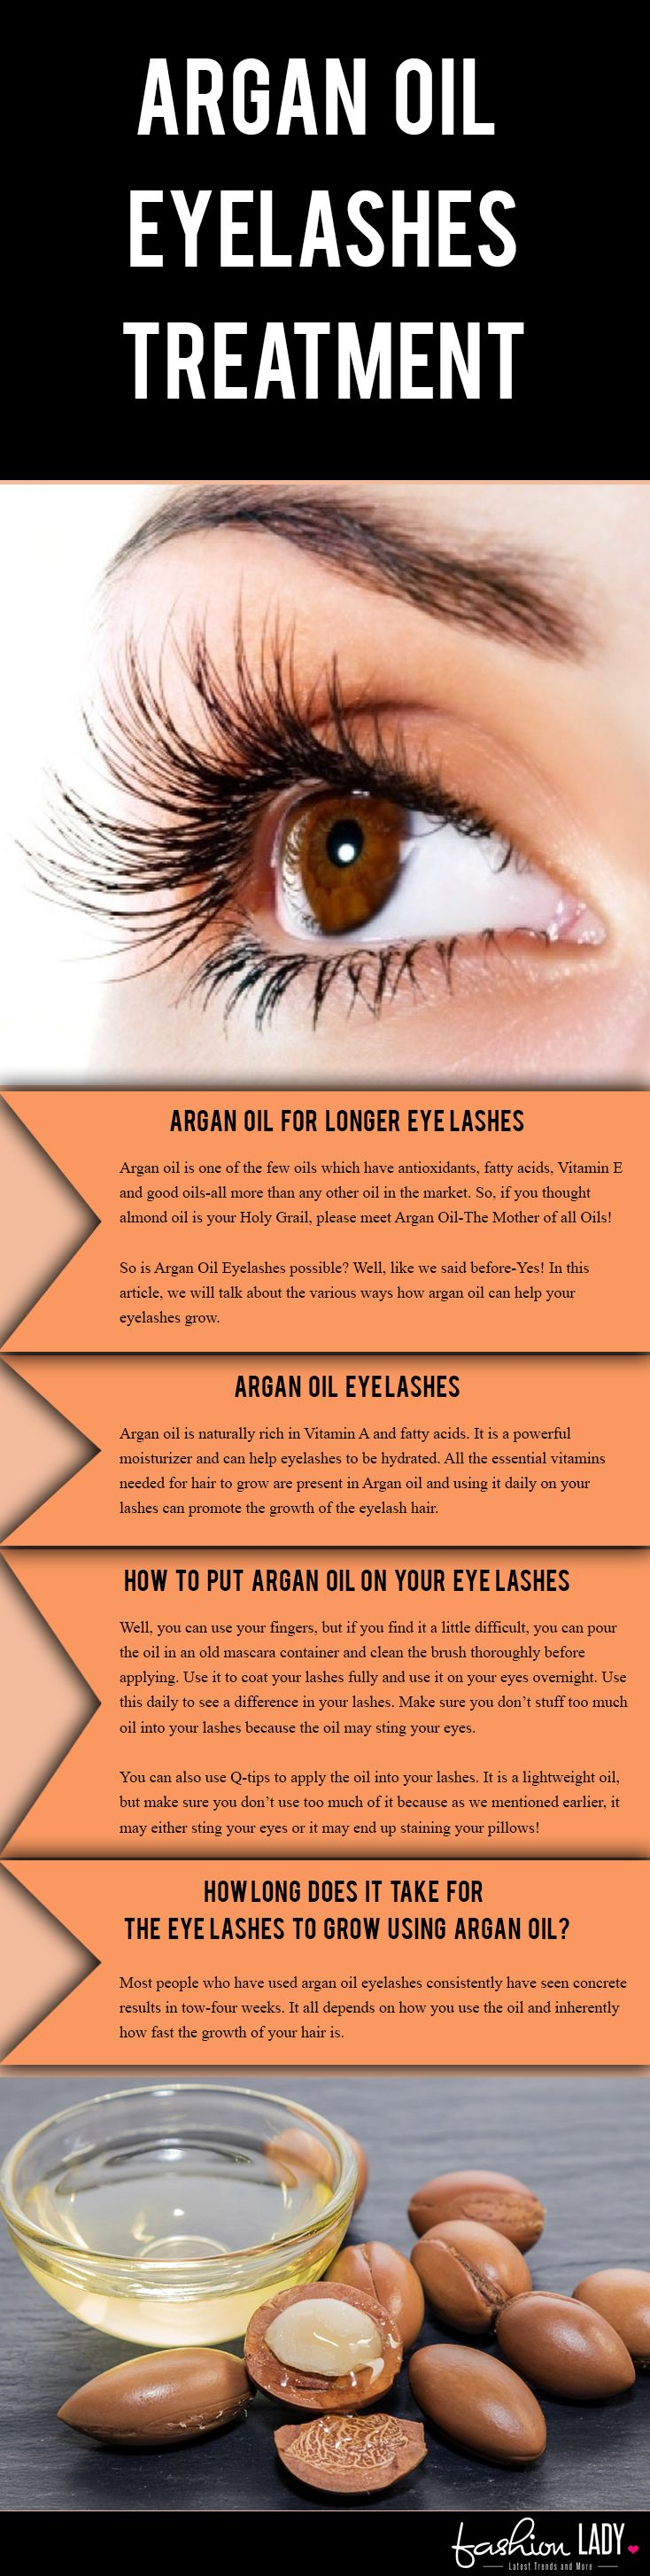 25+ best ideas about Eyelash treatment on Pinterest | Natural ...